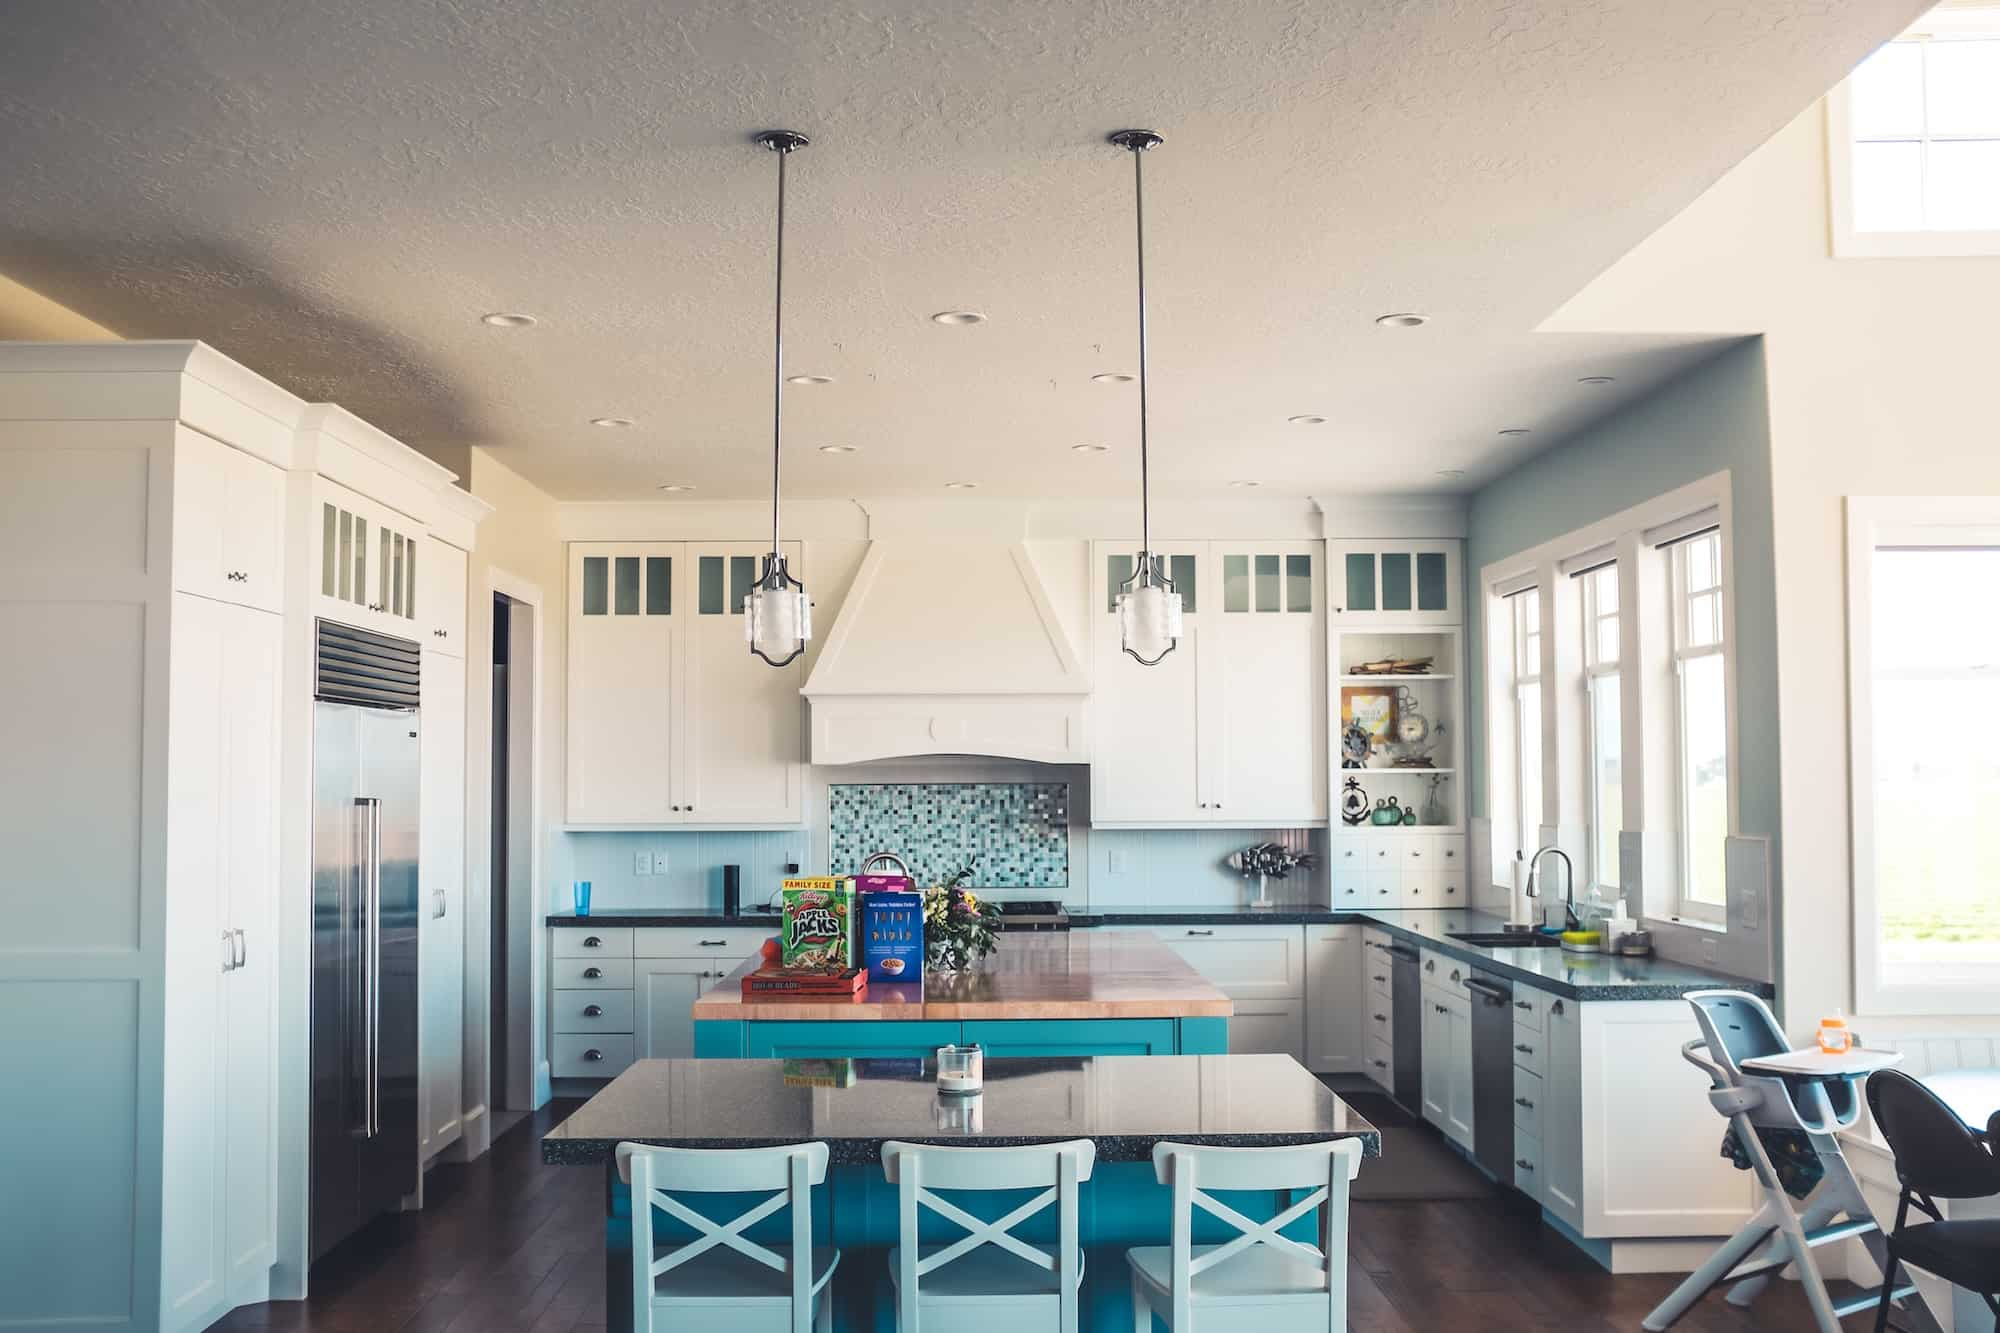 Bakersfield Kitchen Remodeling, Bakersfield Remodeling Contractor, iQ General Construction